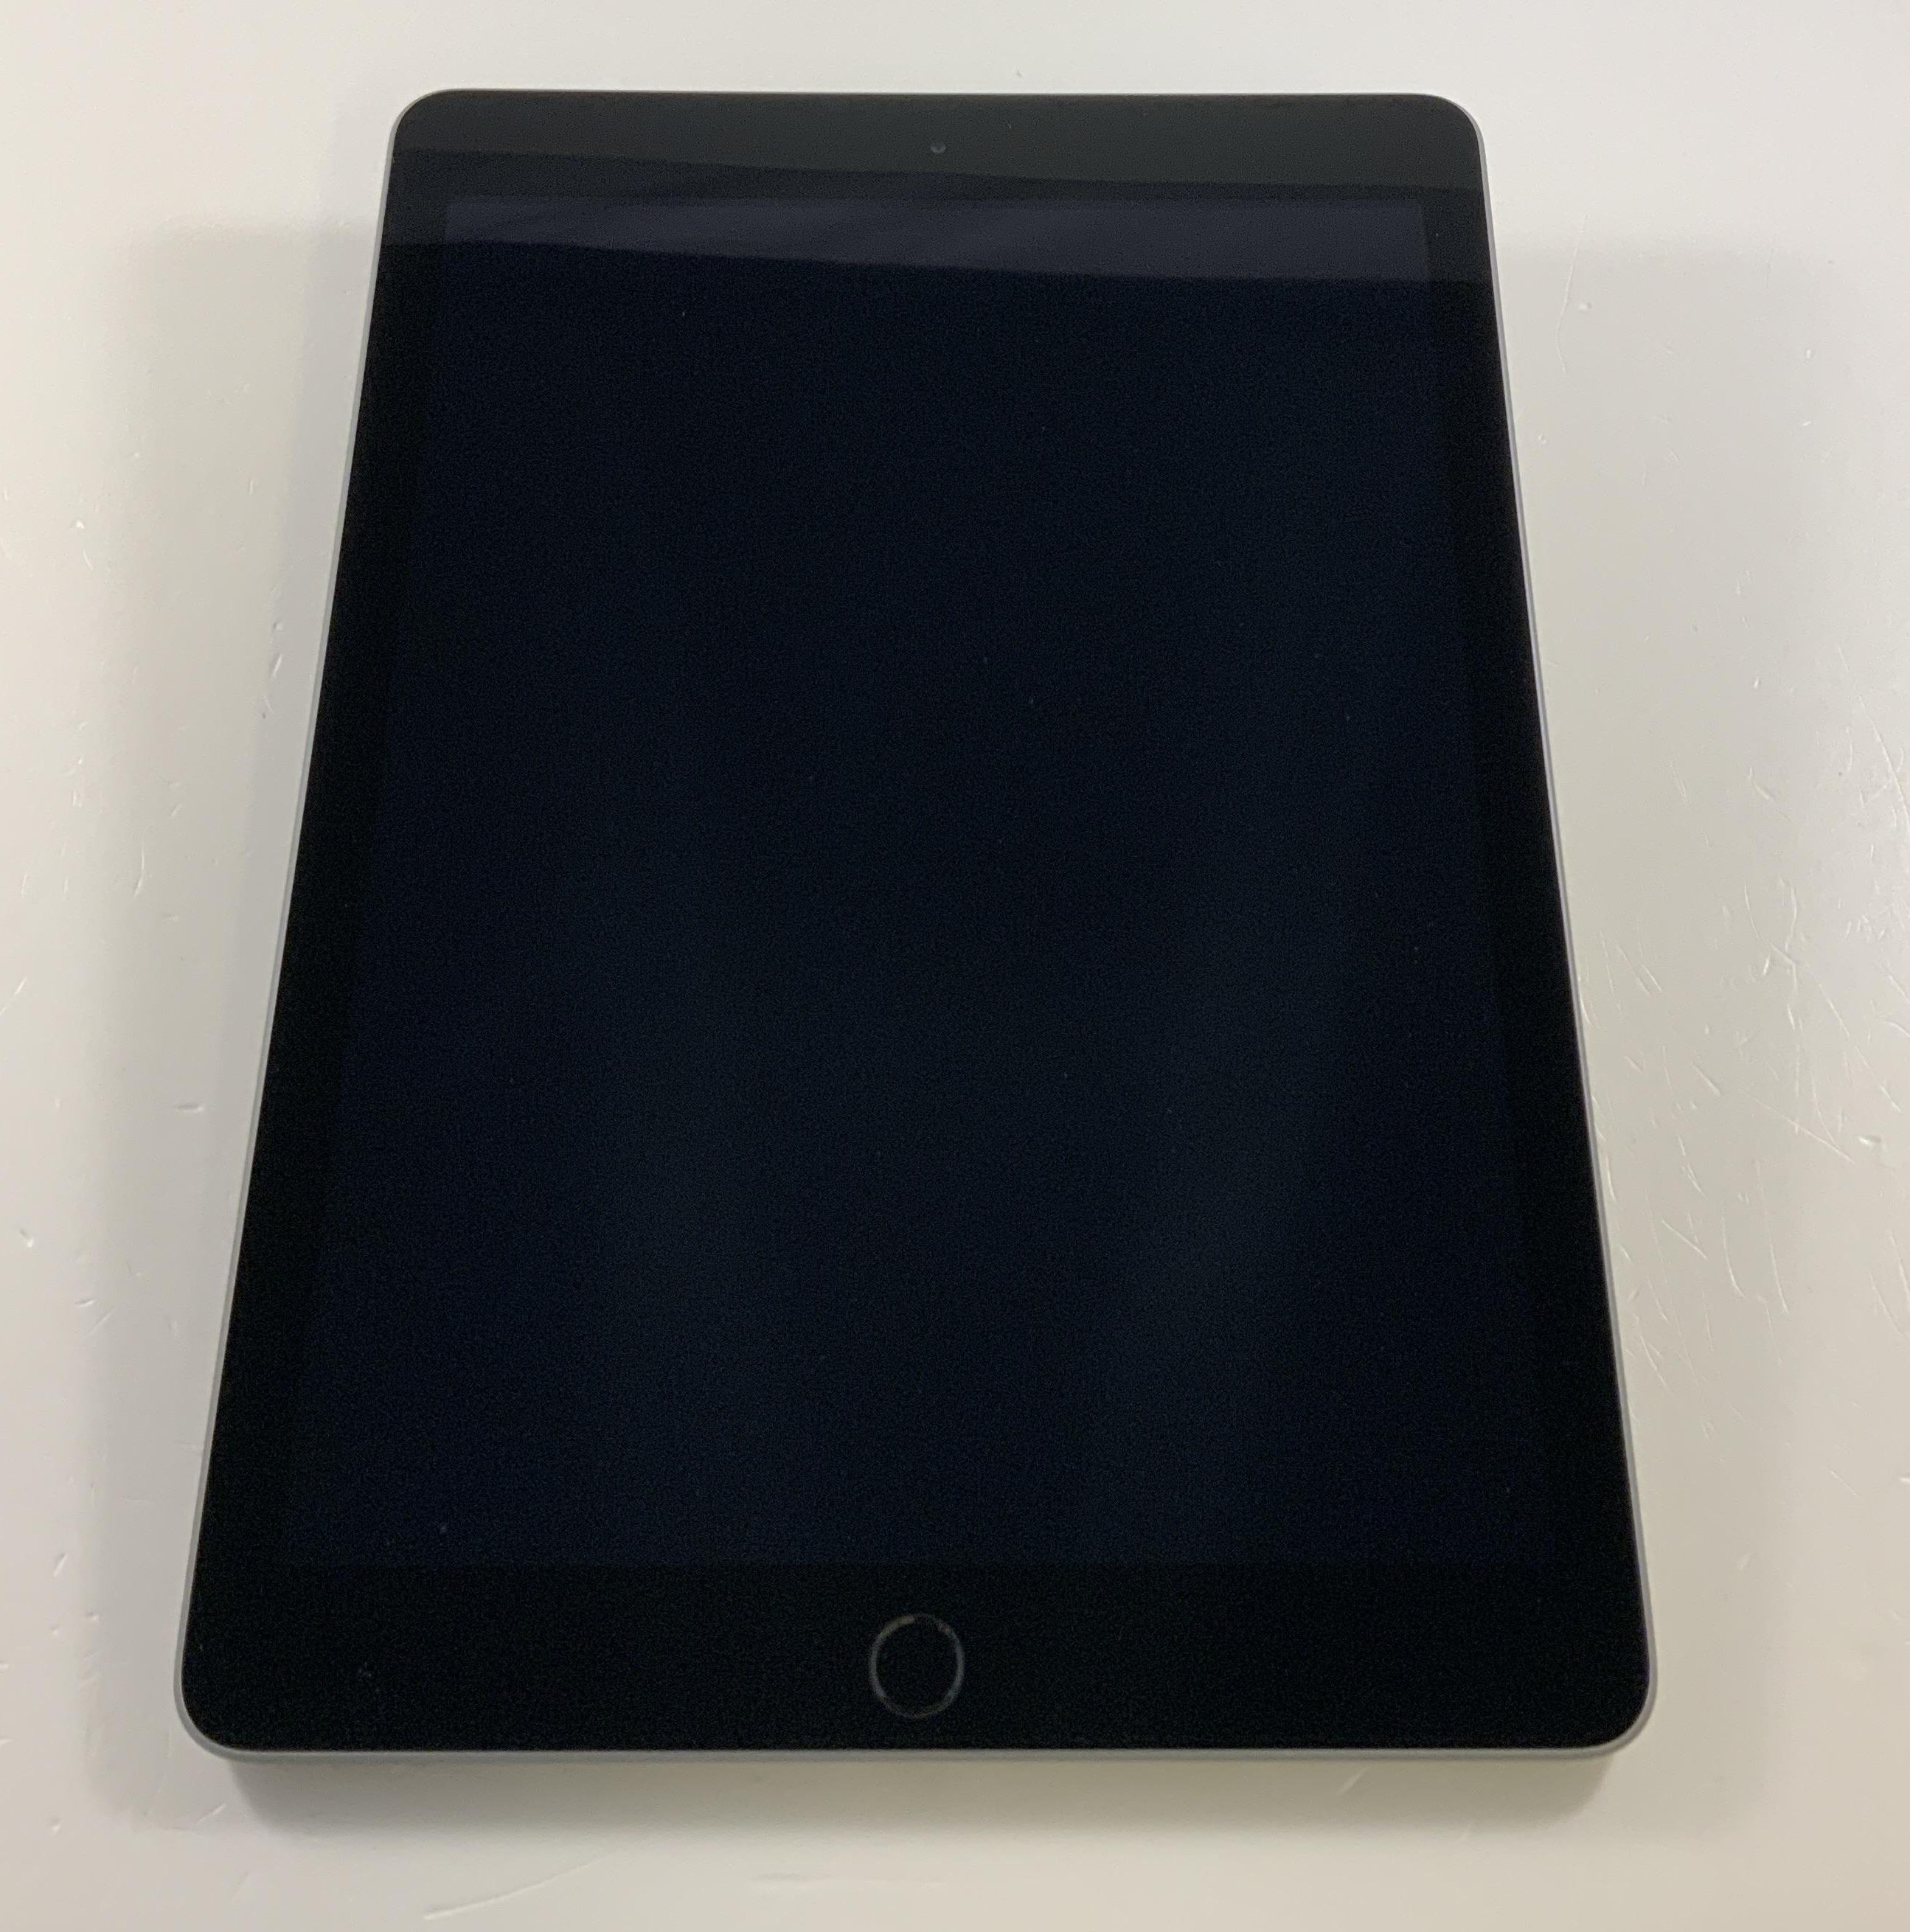 iPad 5 Wi-Fi 32GB, 32GB, Space Gray, image 1